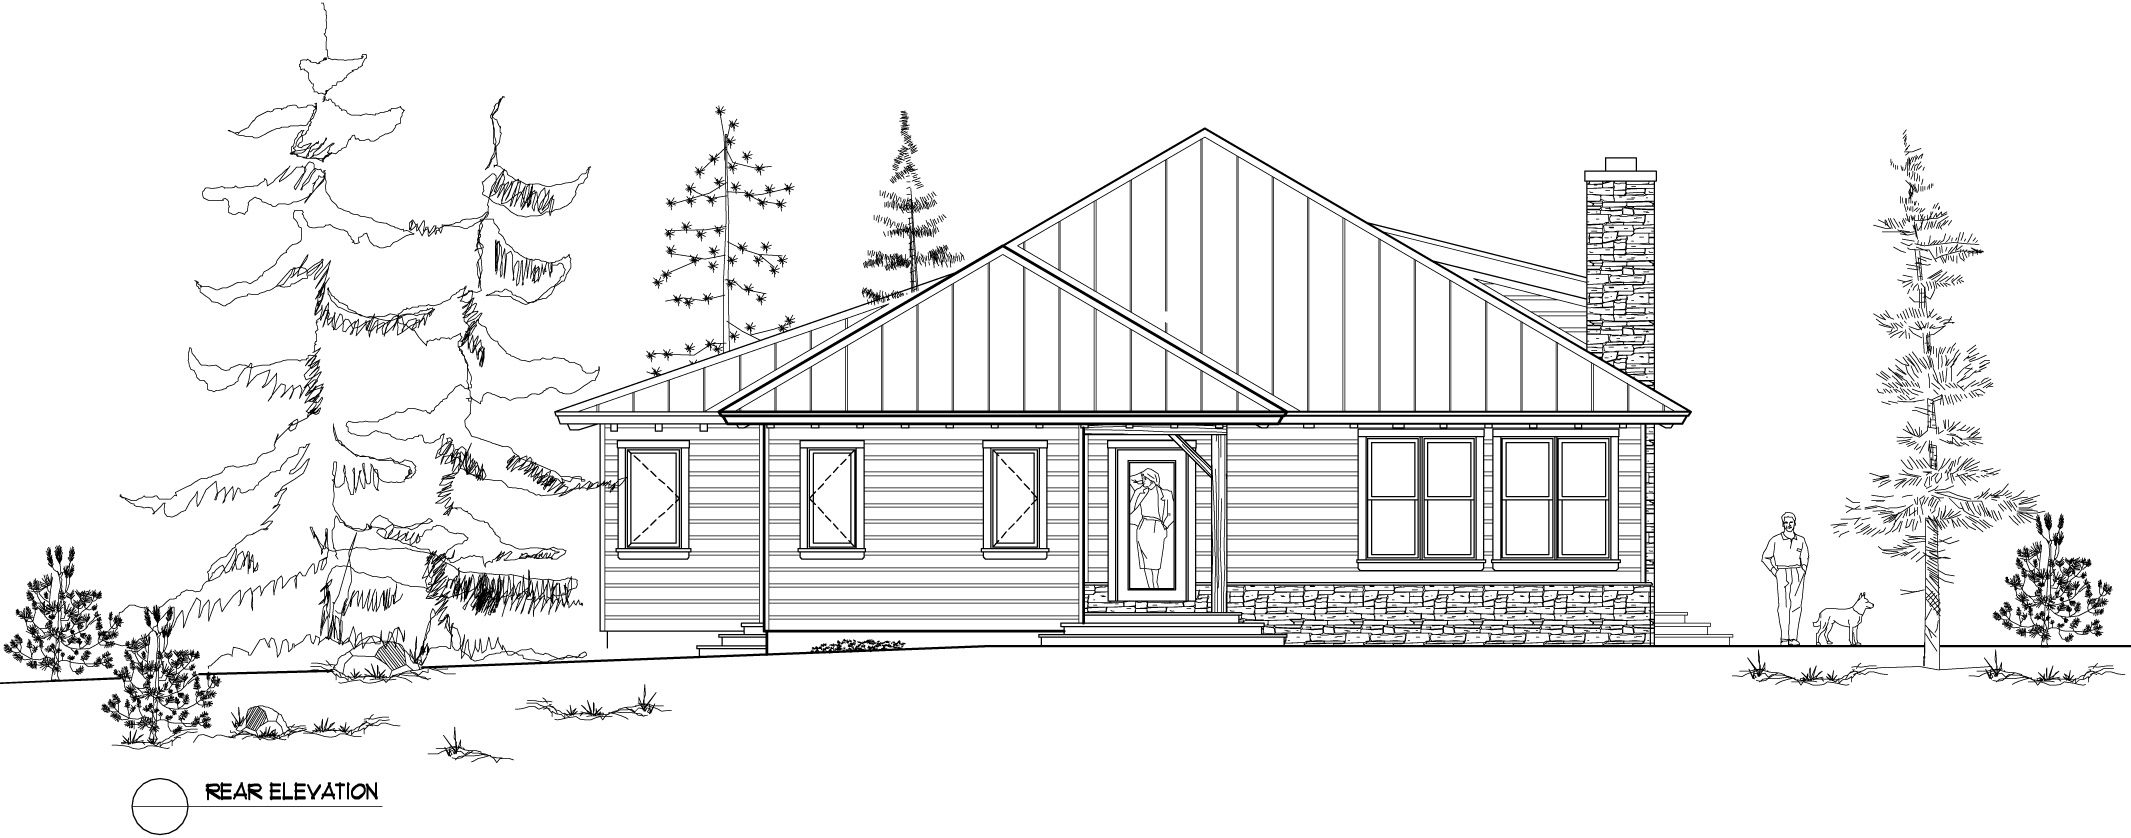 Normerica Timber Frame, House Plan, The Baril 3514, Rear Elevation